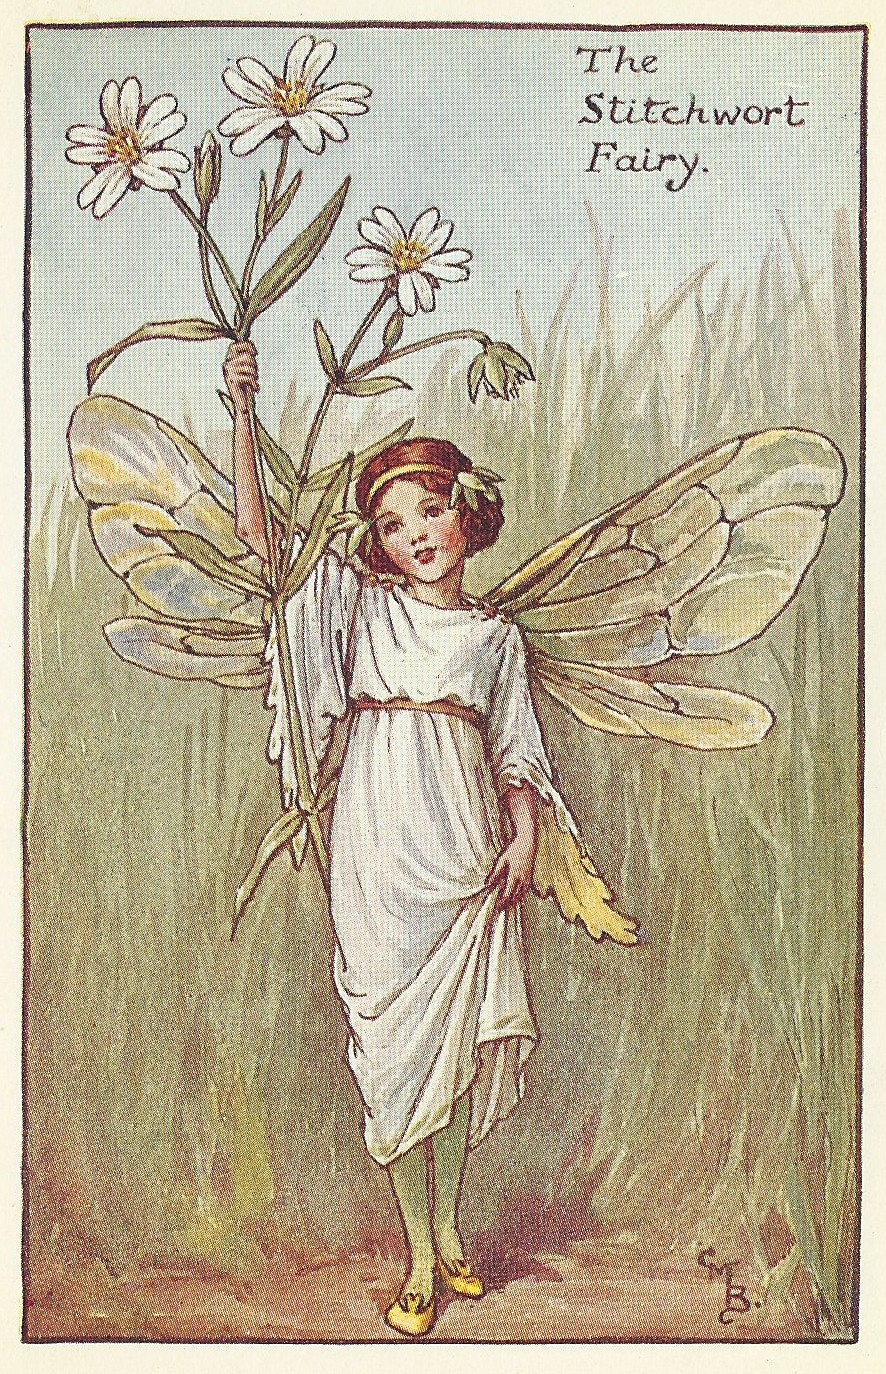 flower fairies stitchwort fairy old print for sale frontispiece